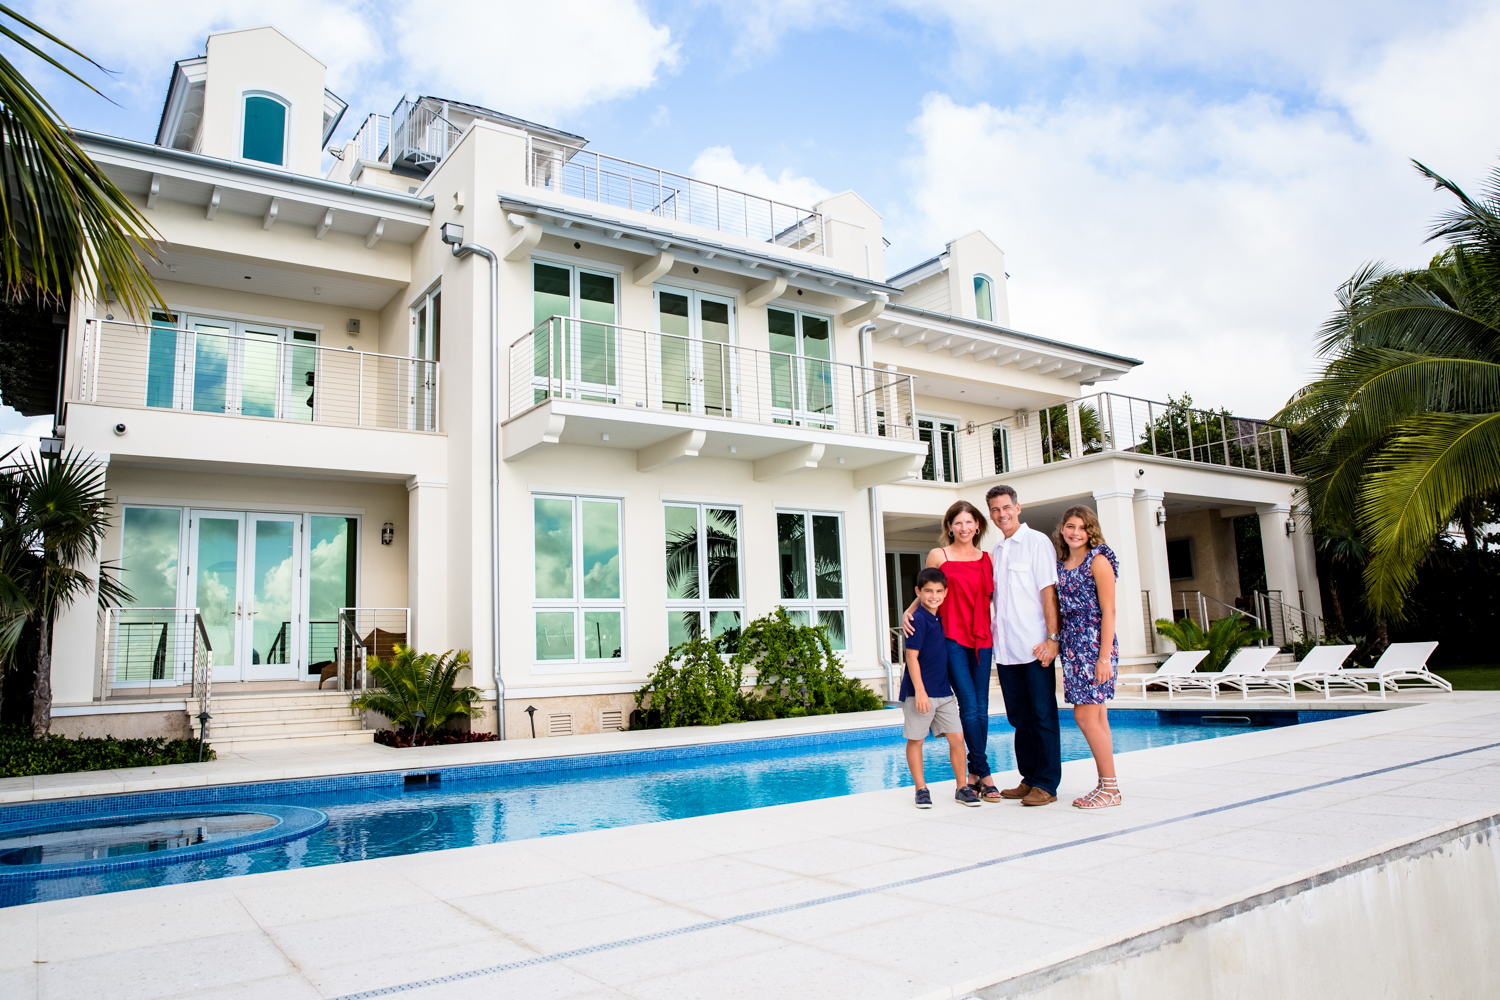 Family portrait in Key Biscayne Fl. beautiful home on the water